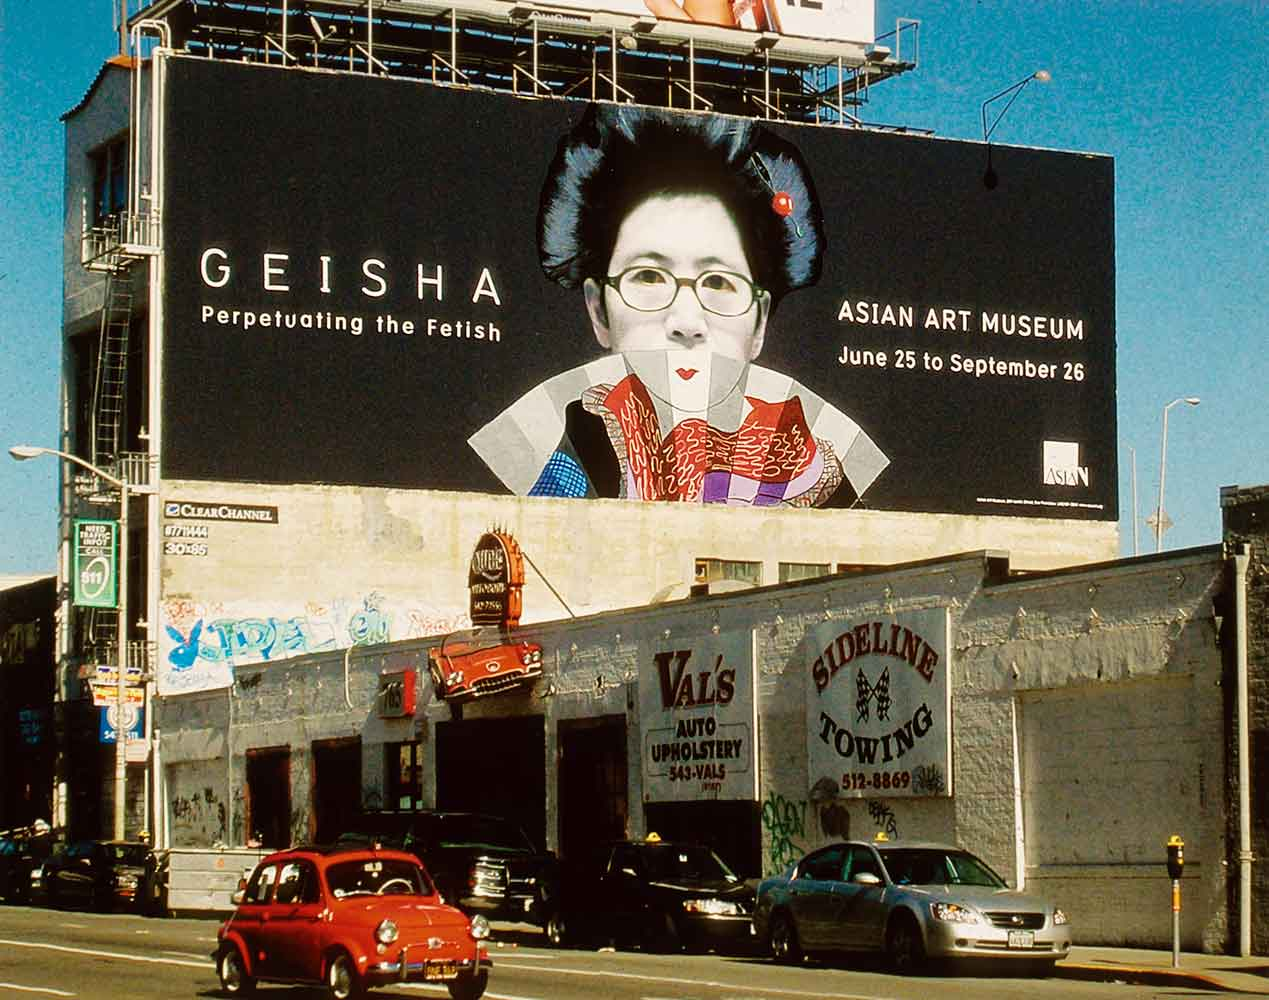 My Geisha Fantasy #1: Billboard Liberation